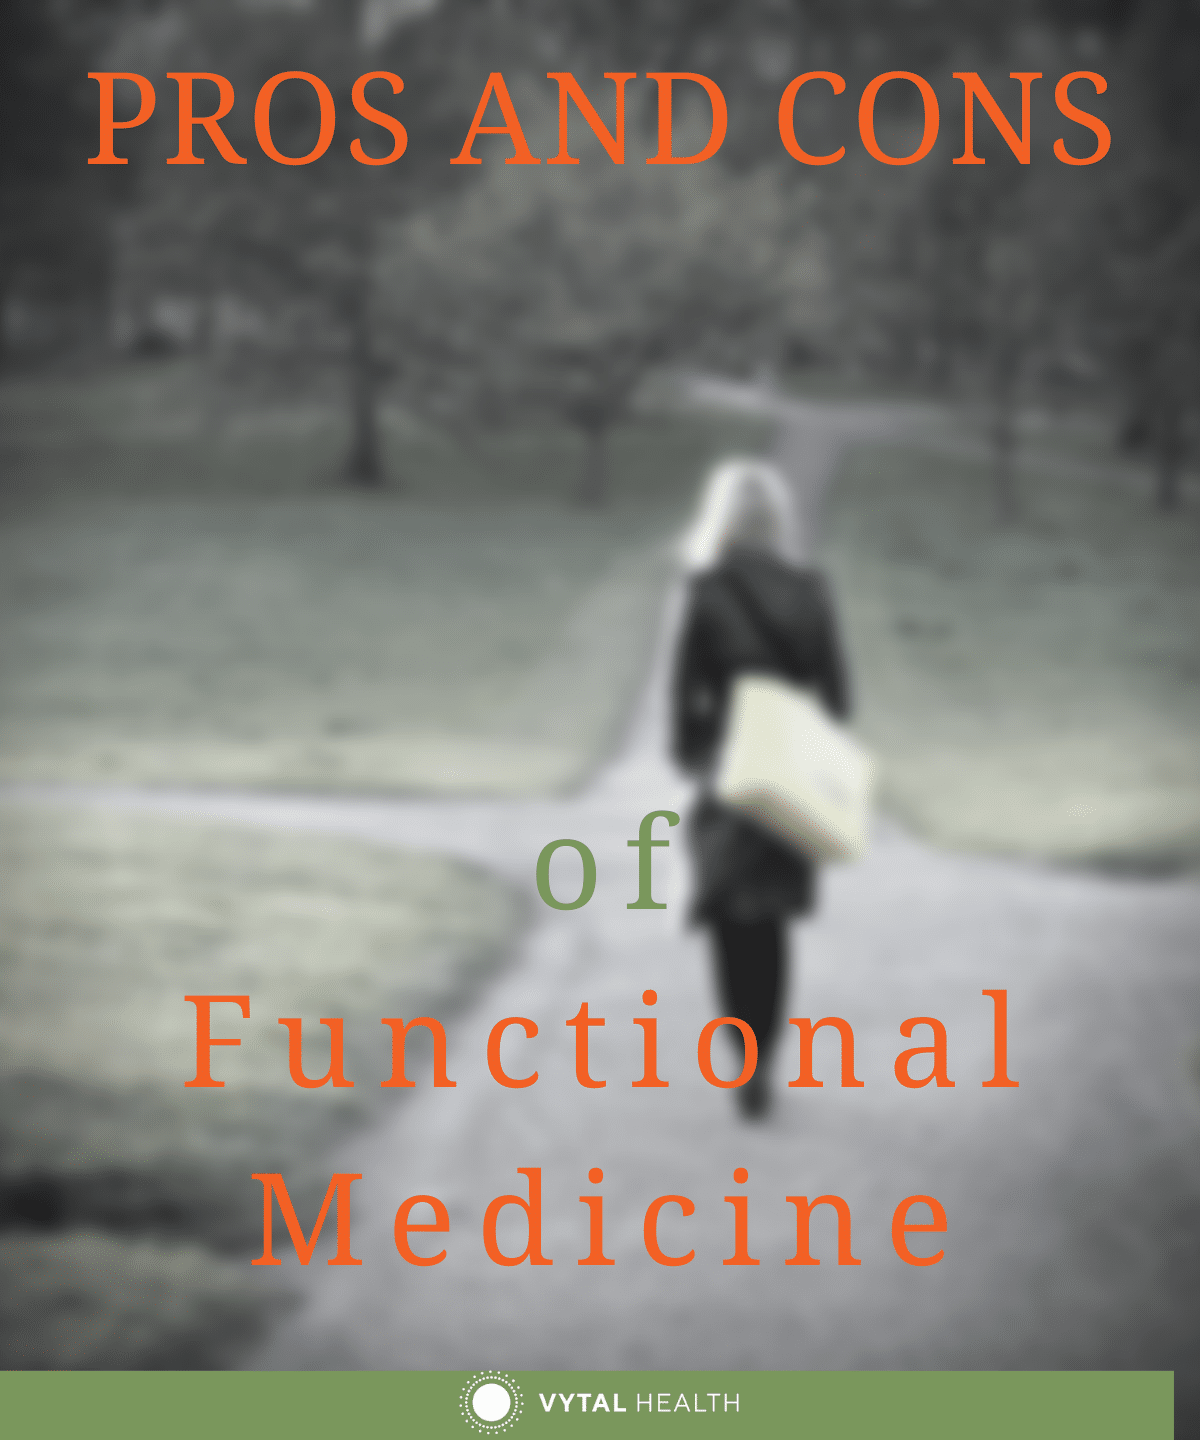 pros and cons of functional medicine